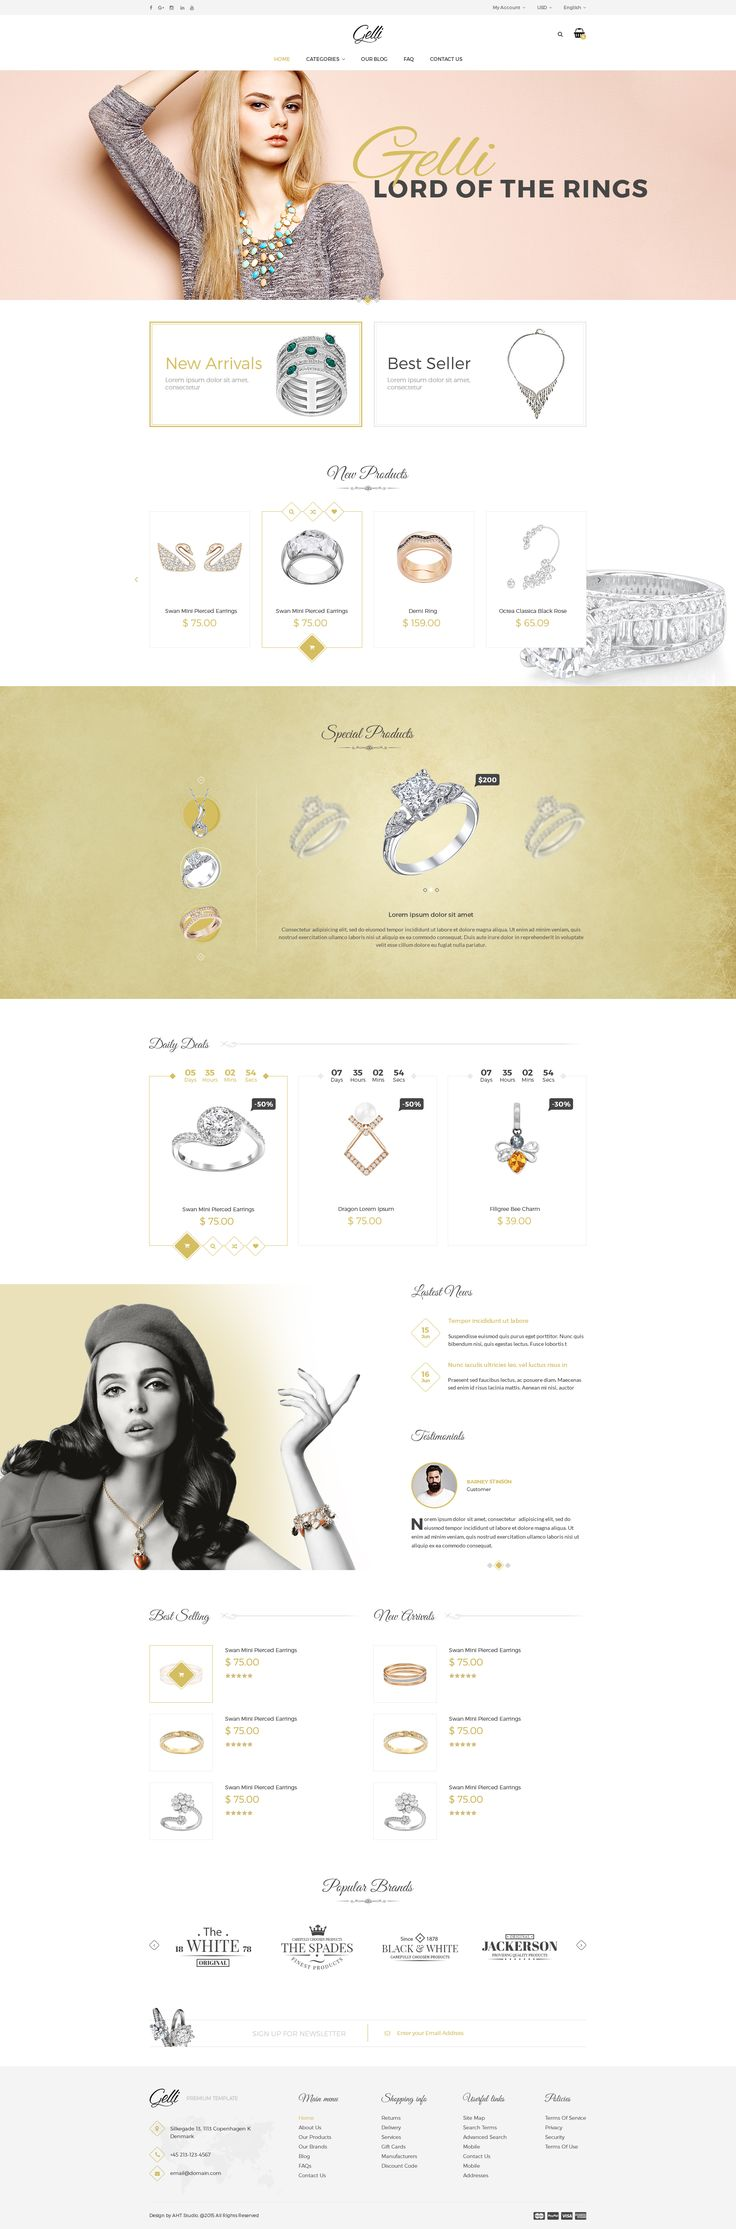 Gelli - PSD Template For Jewelry / Perfume / Accessories Online Shop • Download ➝ https://themeforest.net/item/gelli-psd-template-for-jewelry-perfume-accessories-online-shop/15560906?ref=pxcr